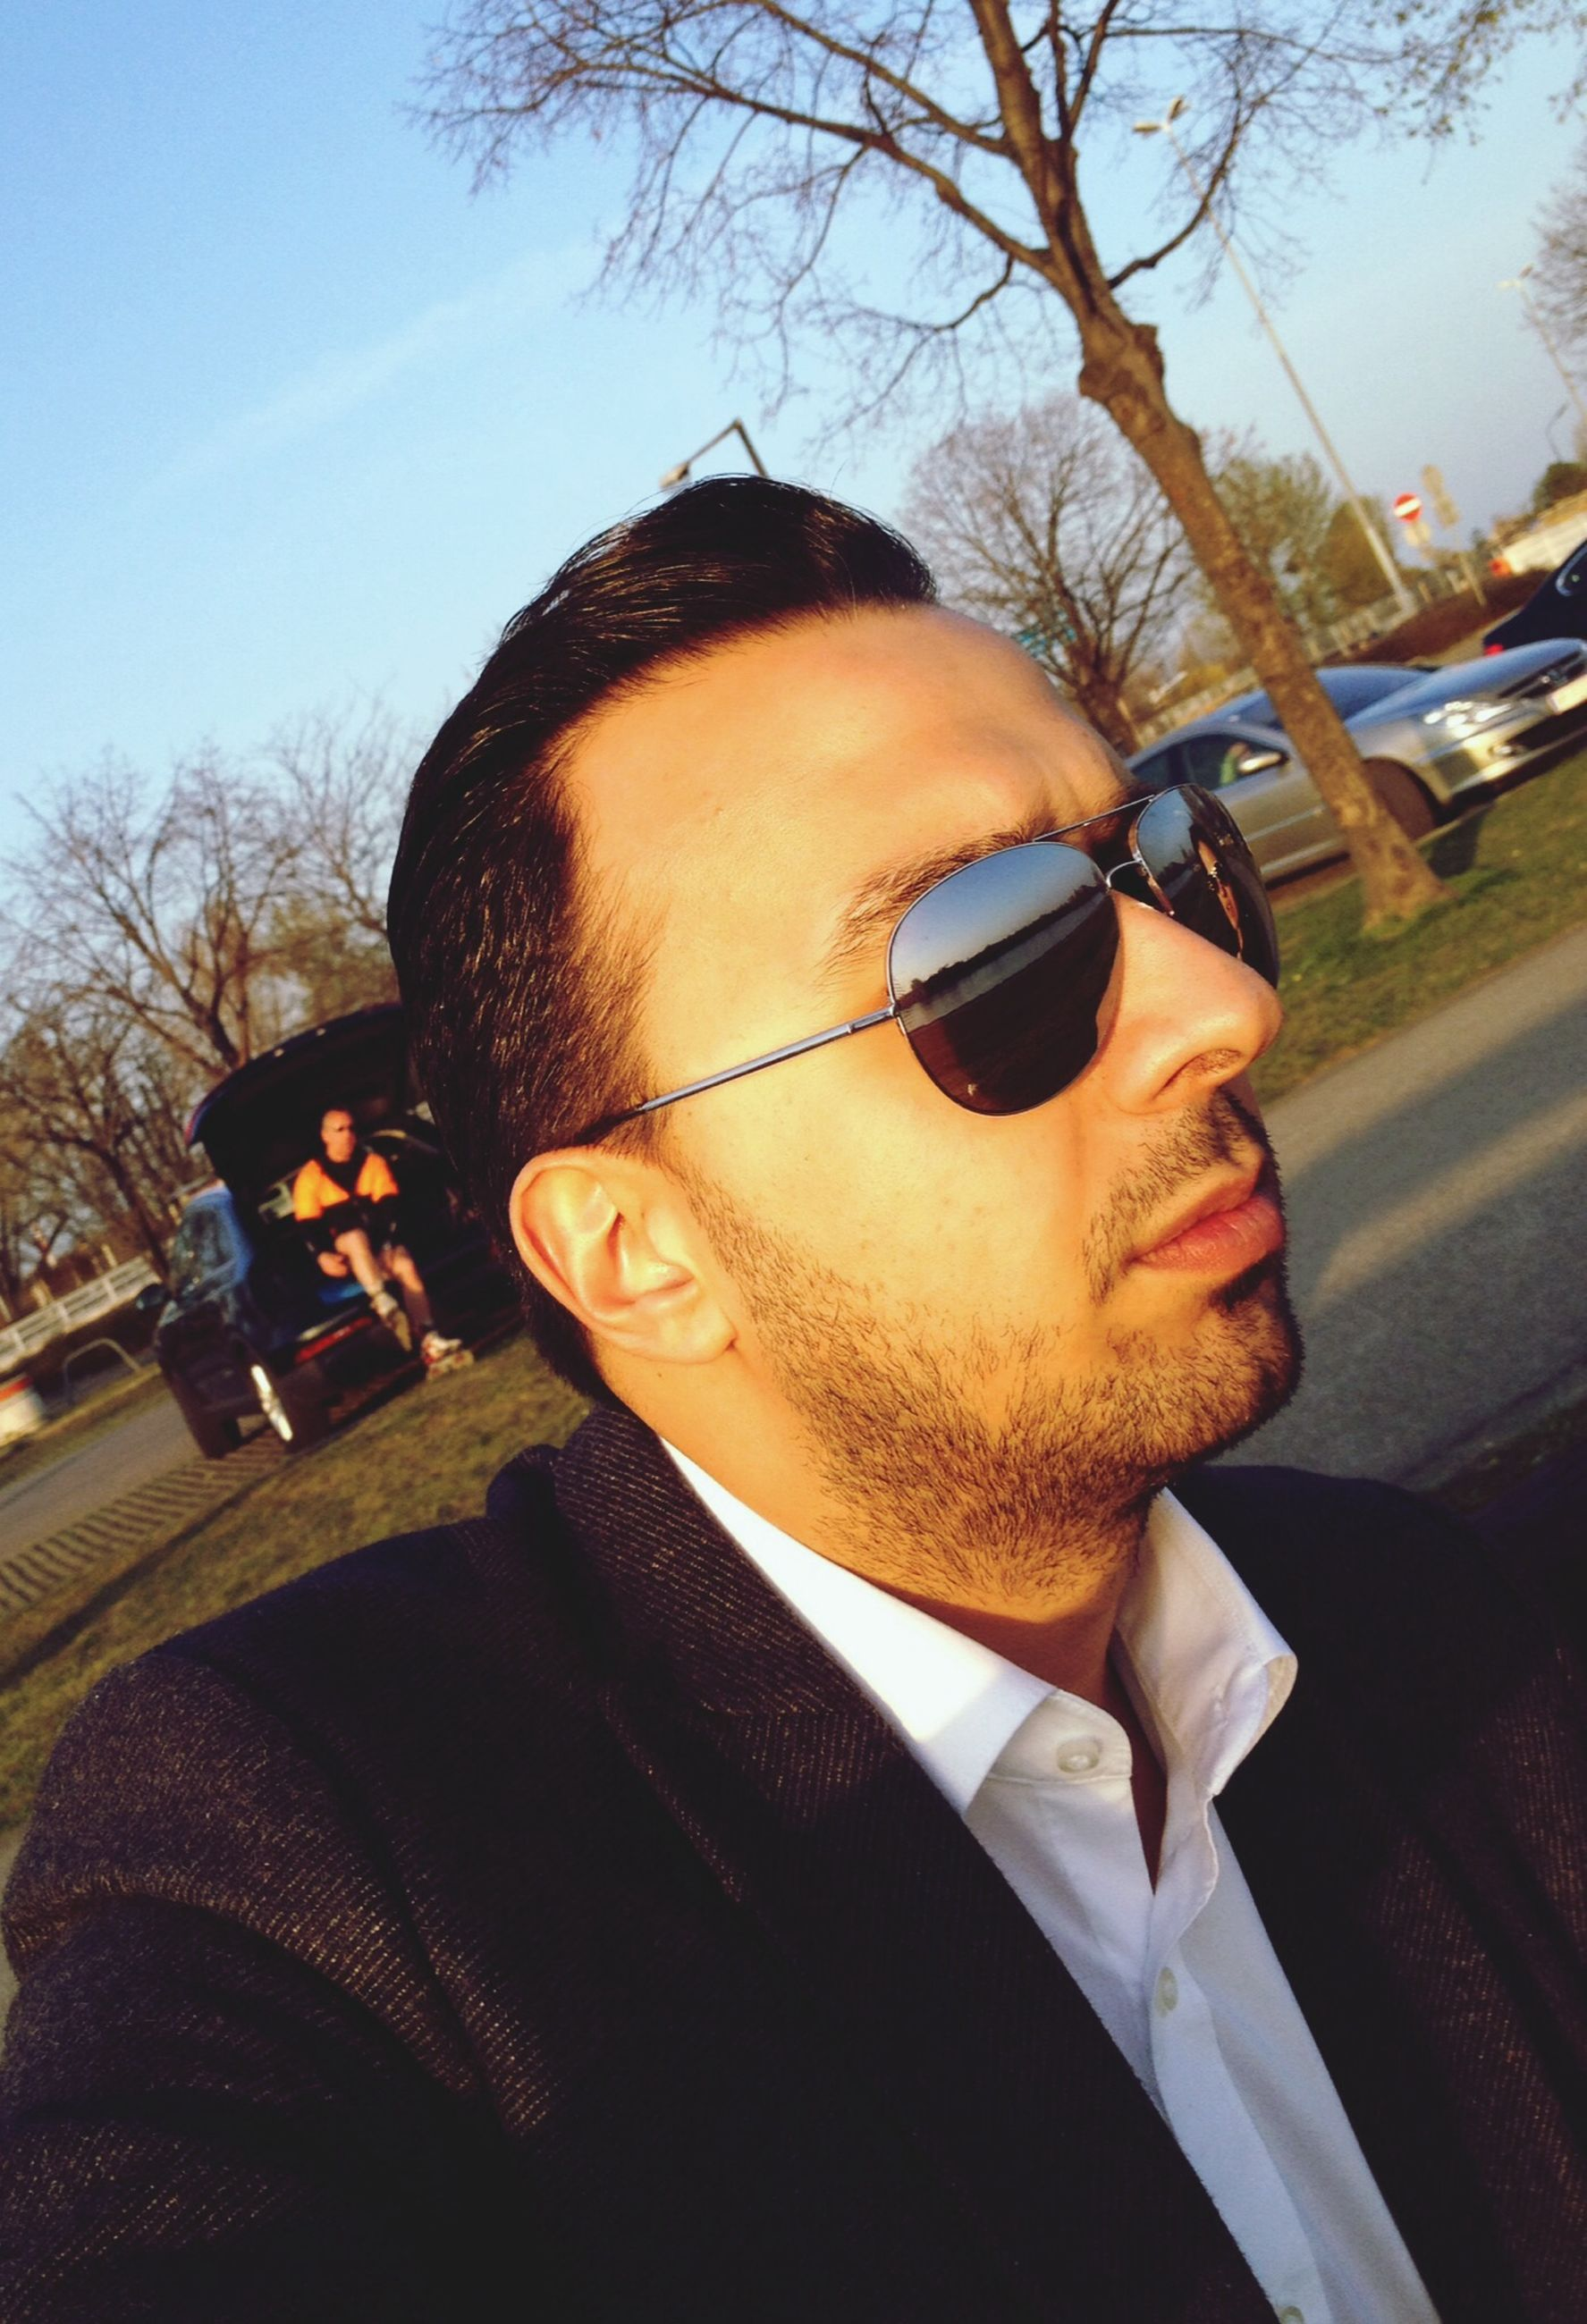 young adult, sunglasses, person, lifestyles, portrait, looking at camera, young men, leisure activity, headshot, front view, mid adult men, car, mid adult, casual clothing, eyeglasses, beard, head and shoulders, transportation